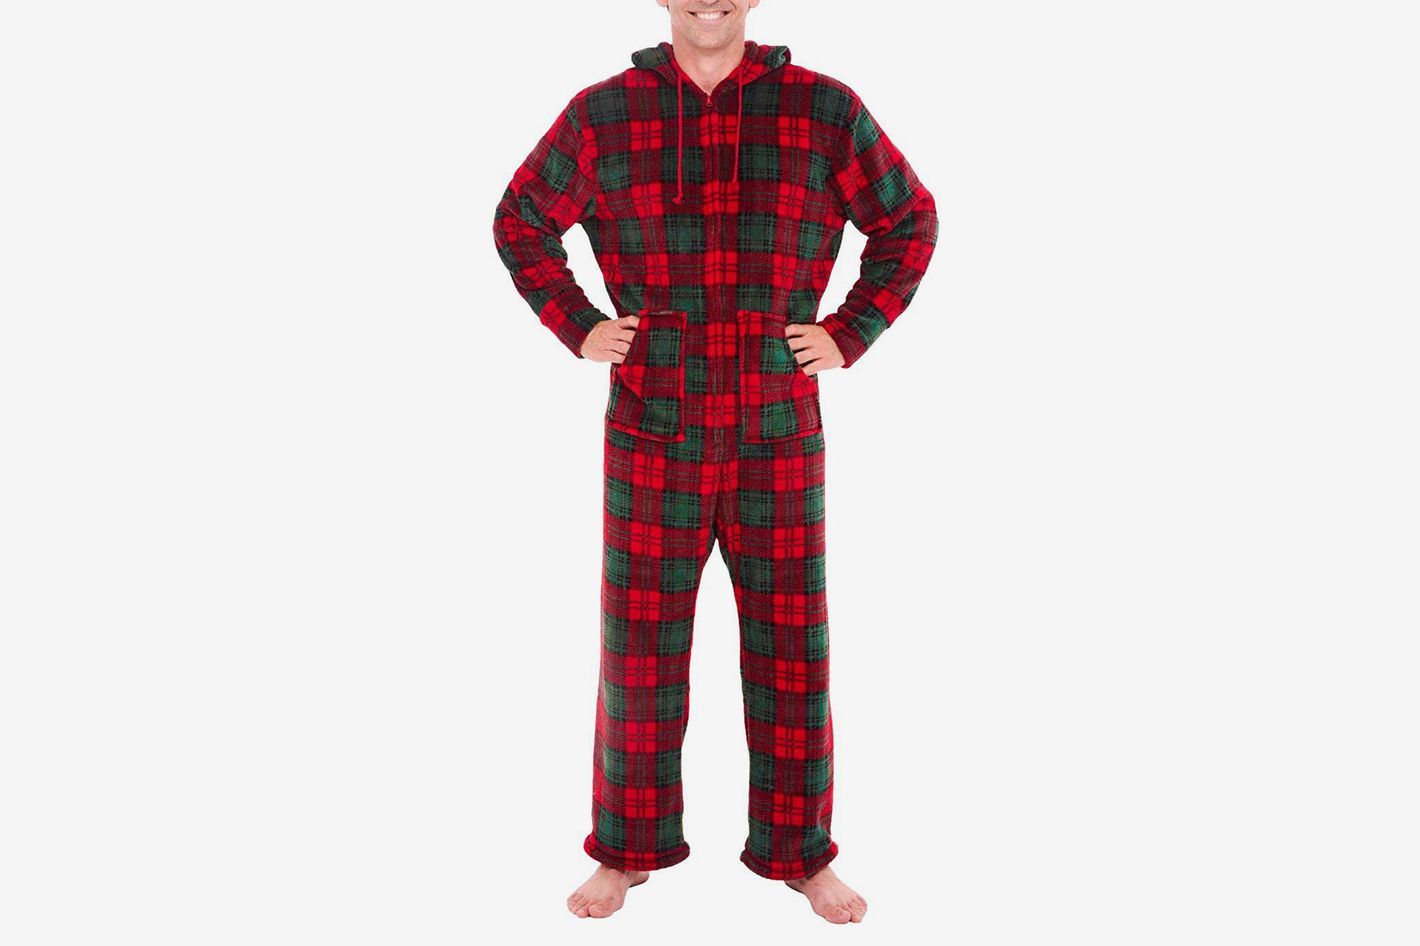 Christmas Onesies.16 Best Christmas Onesies 2018 The Strategist New York